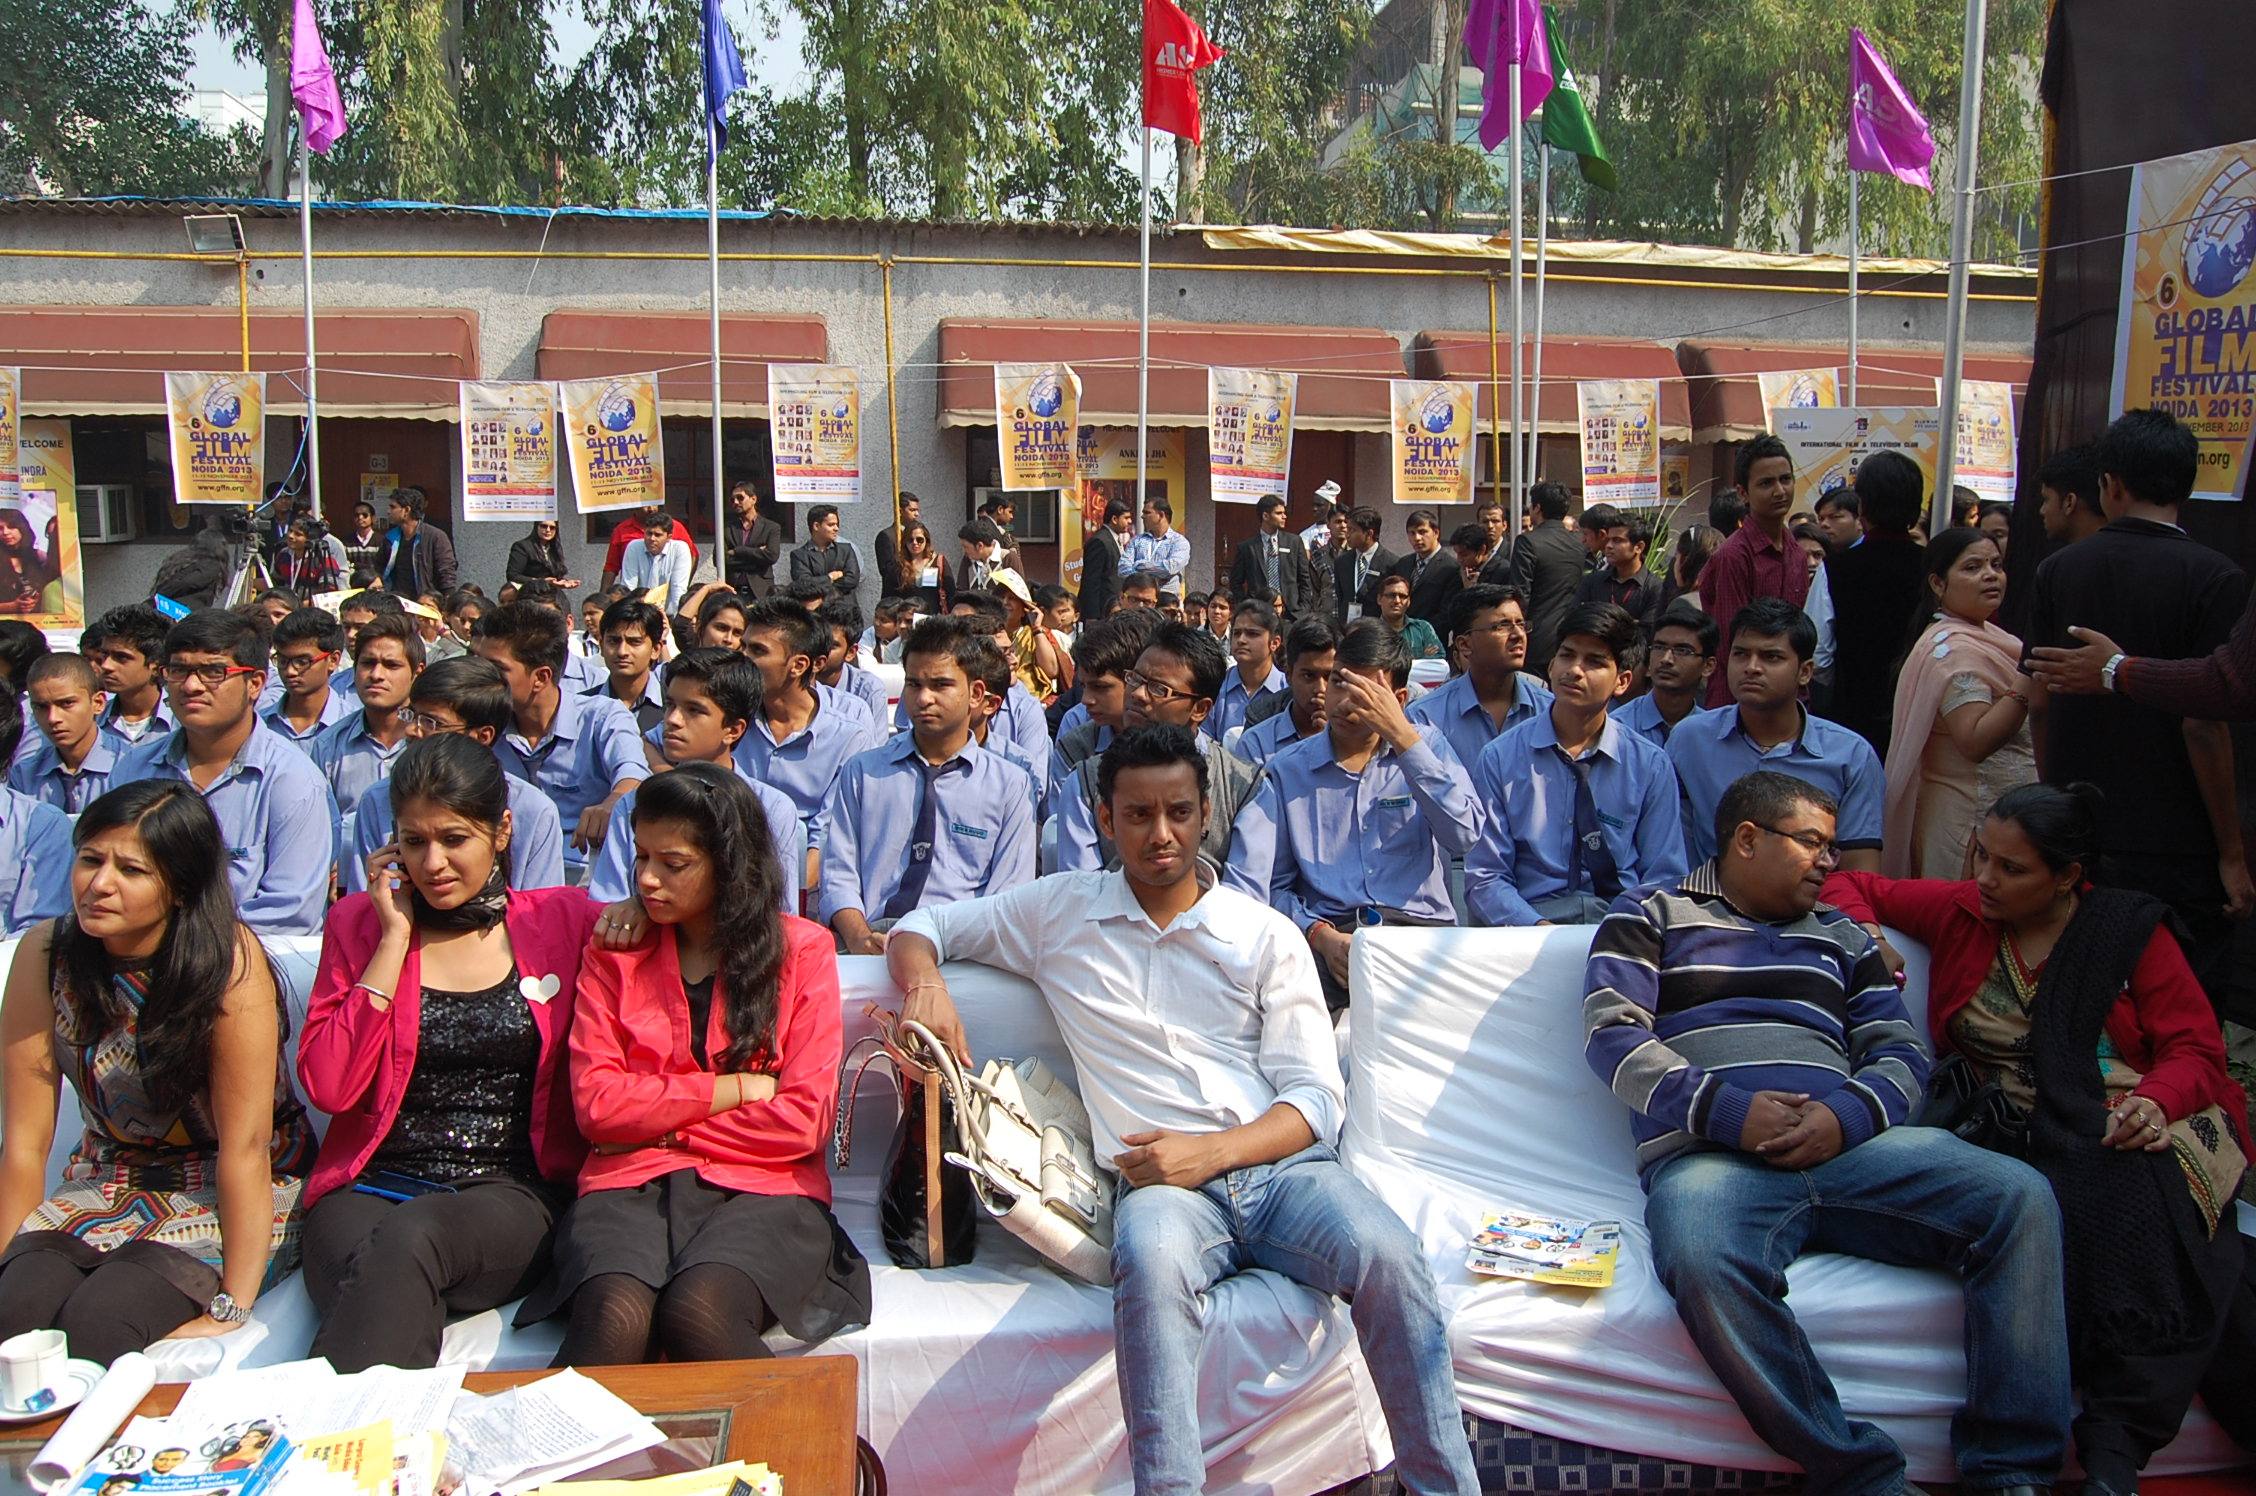 Large Participation By Schools In 6th Global Film Festival Noida